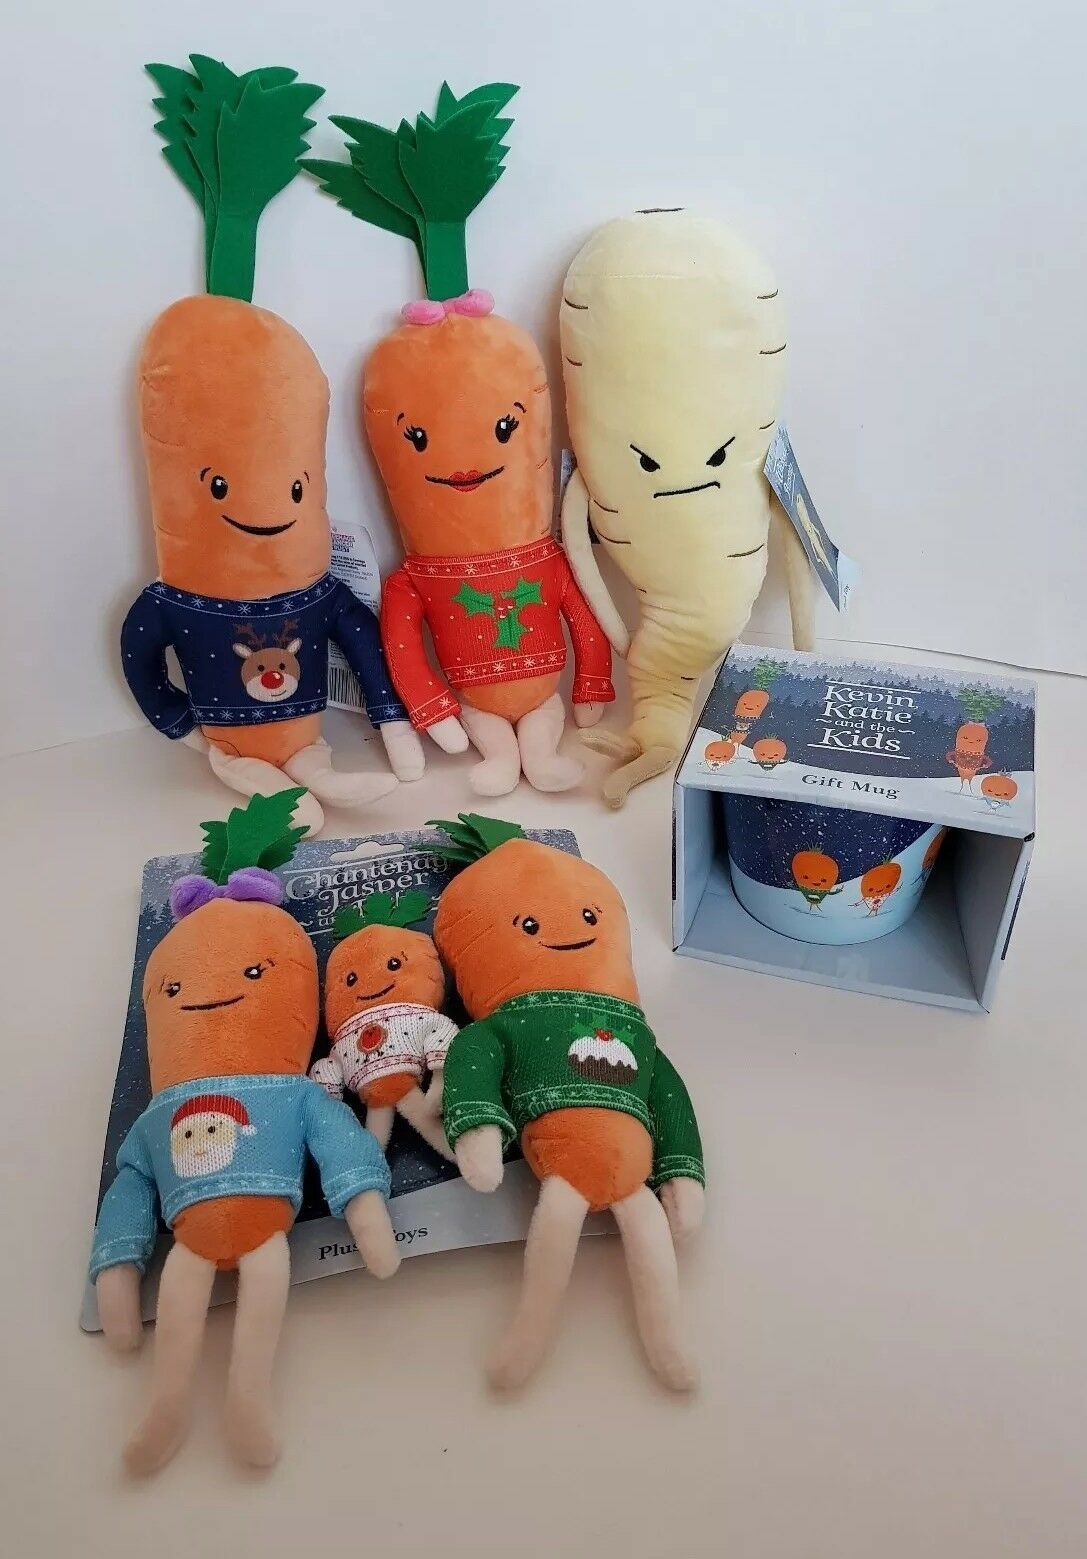 Kevin Kevin Kevin Carrot Bundle Katie Carrot, children carrots, Pascal The Parsip, Cup (new) a79248